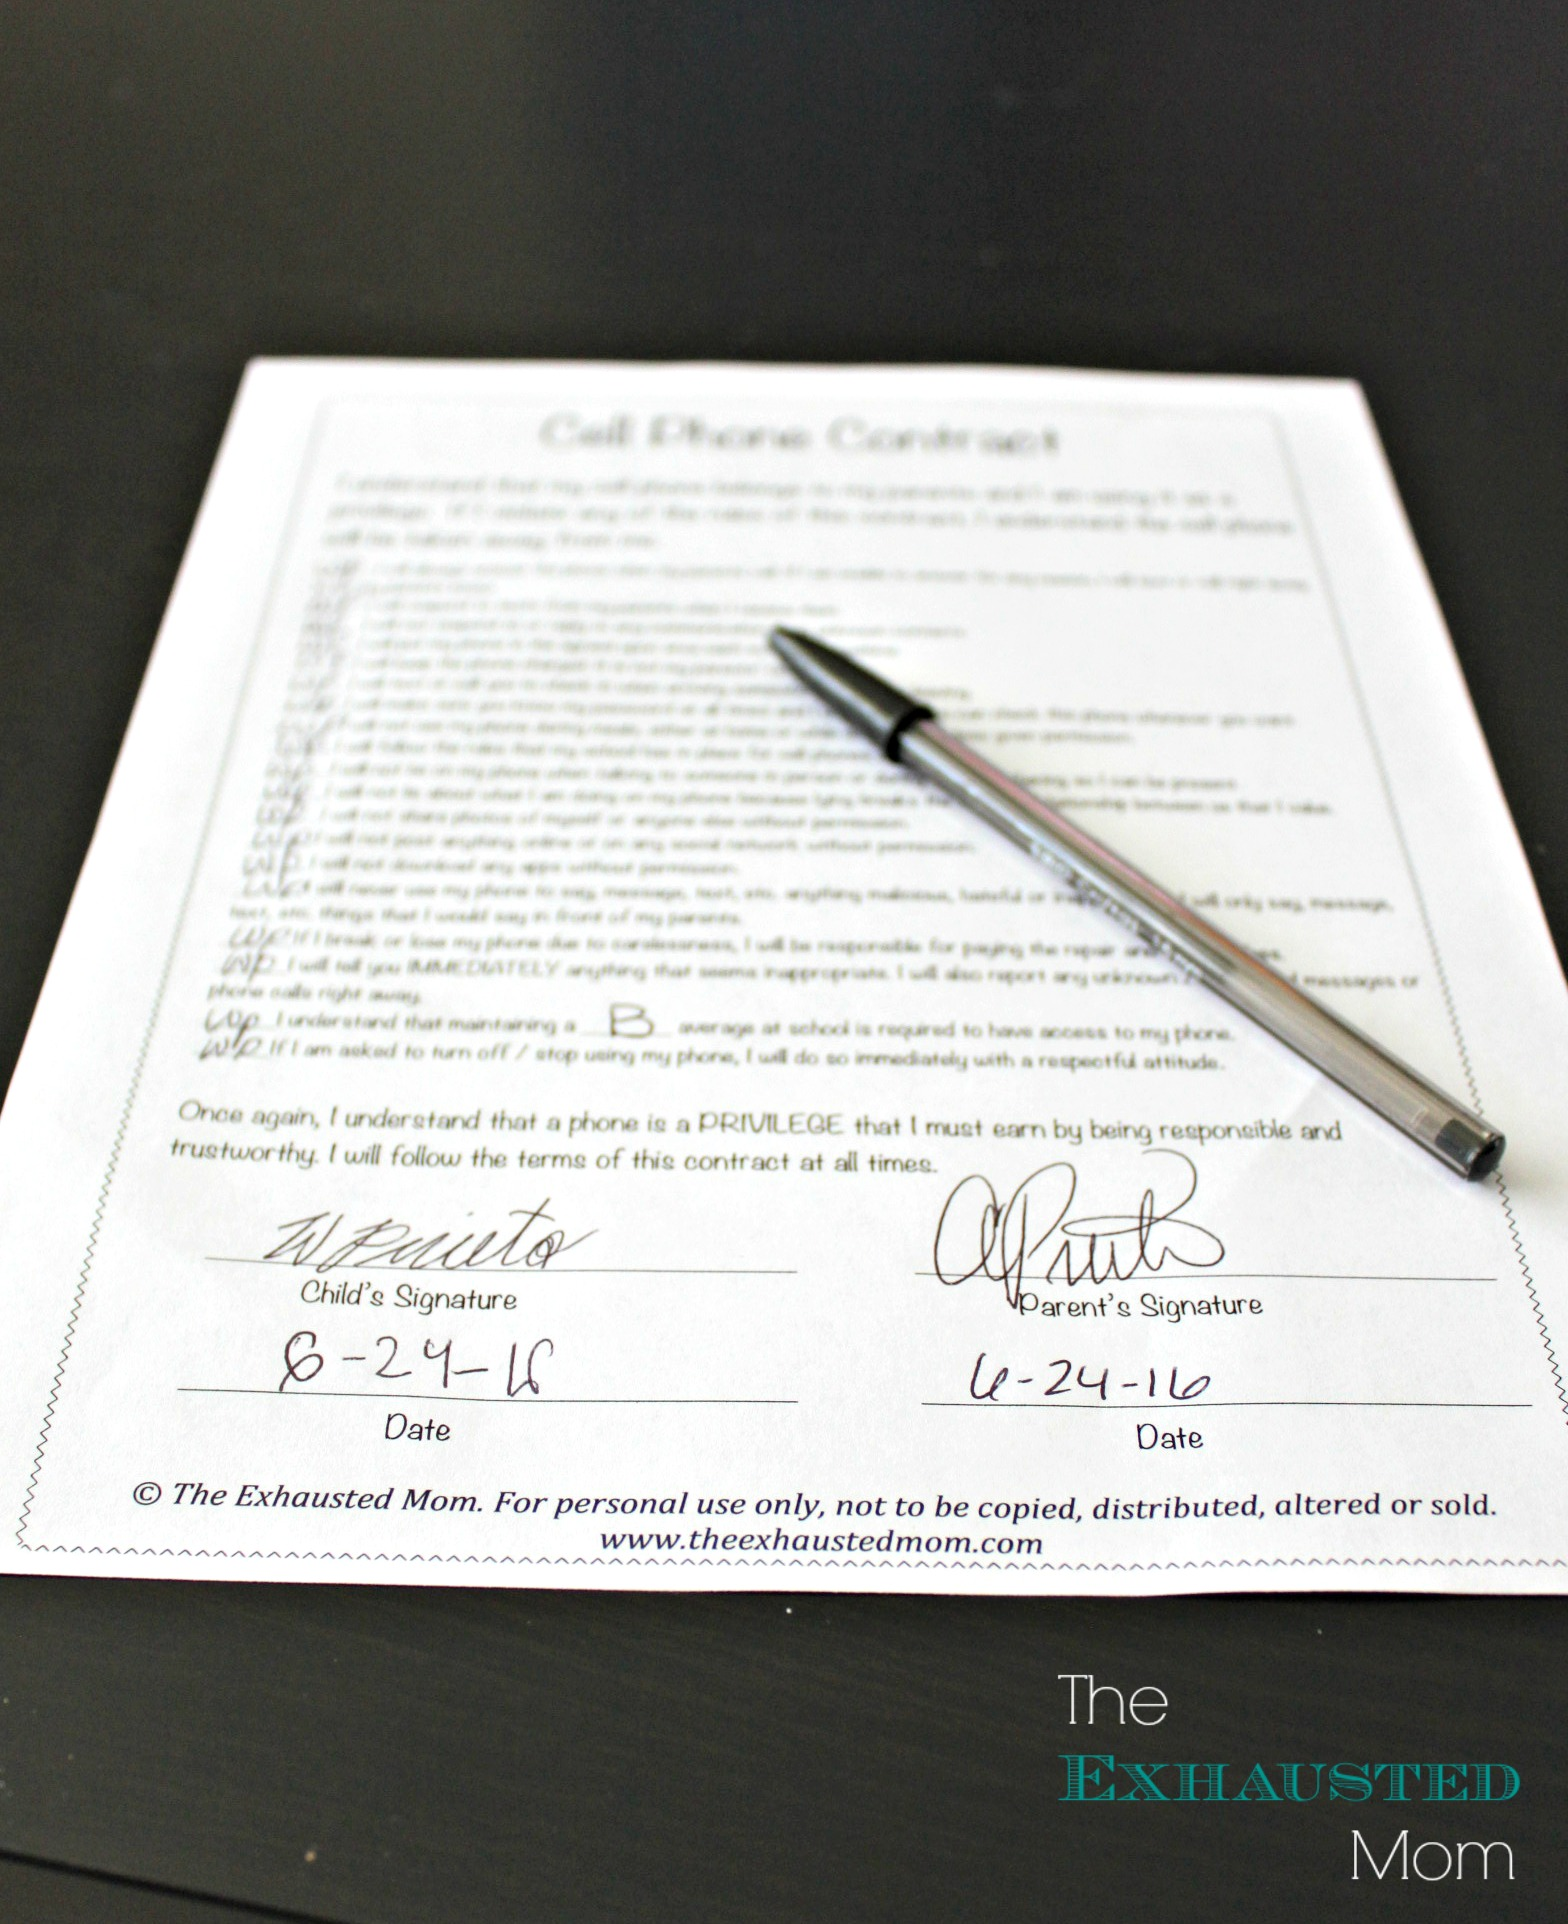 Cell Phone Contract for Tweens